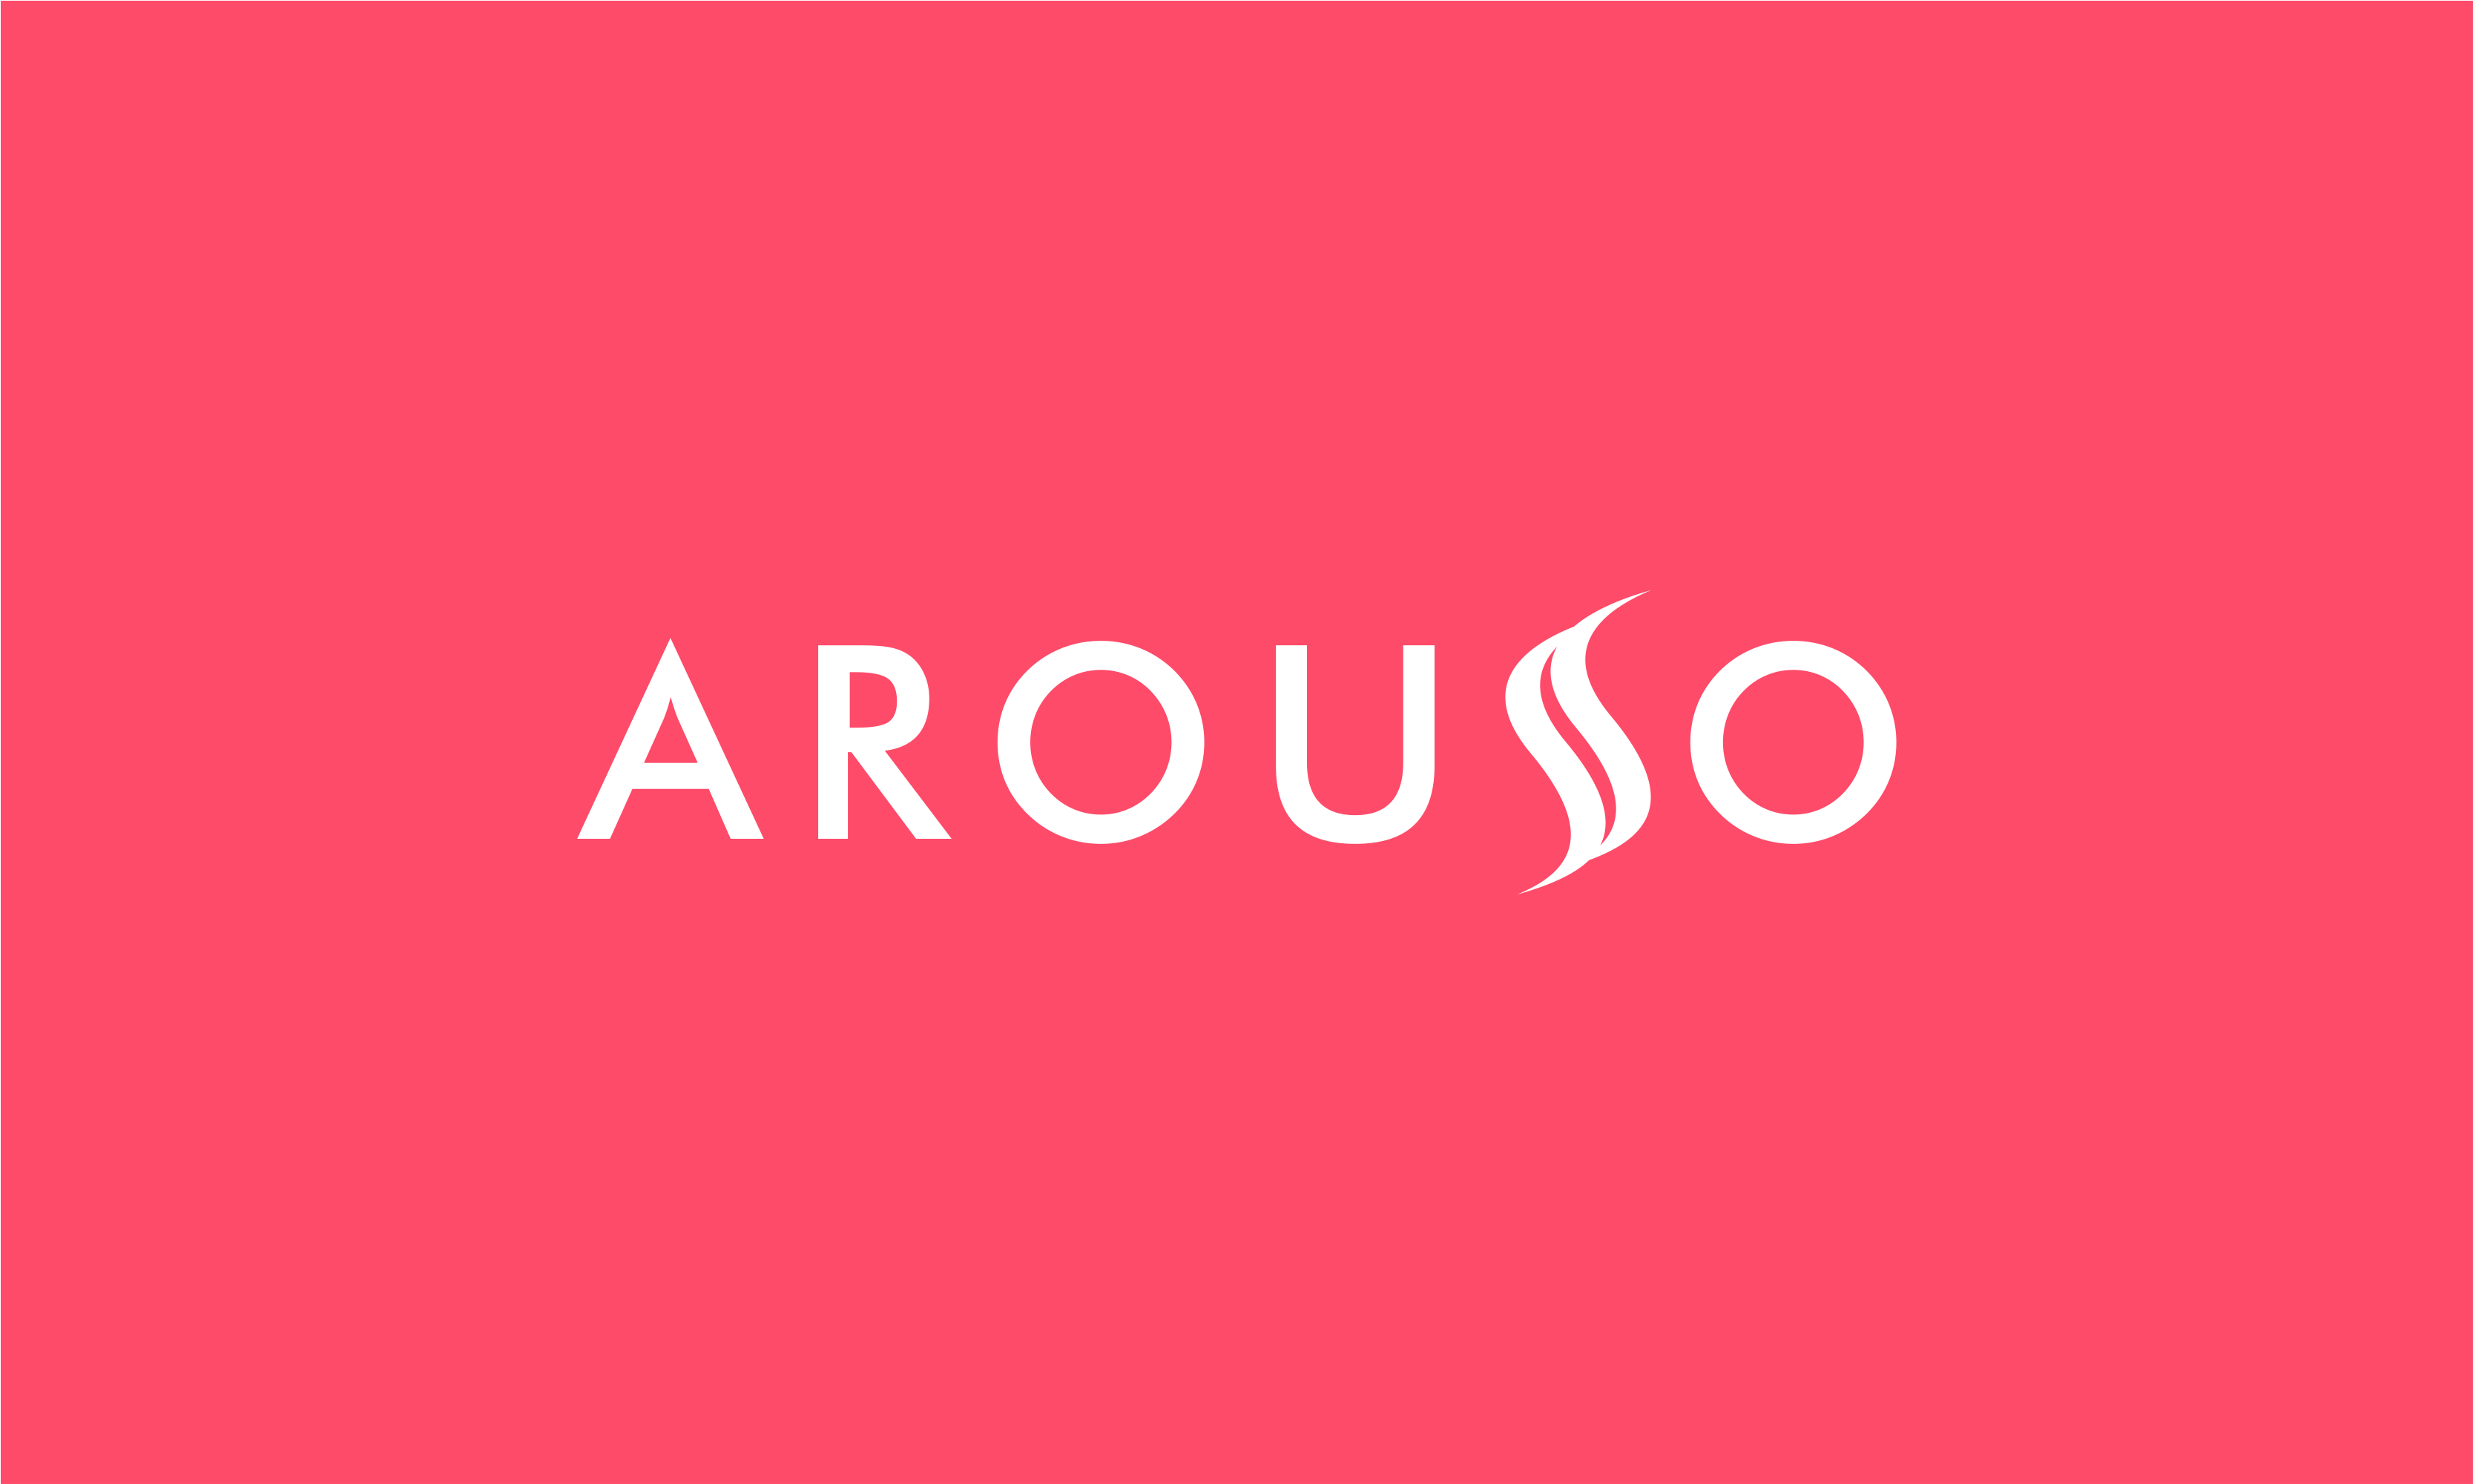 Arouso - E-commerce product name for sale